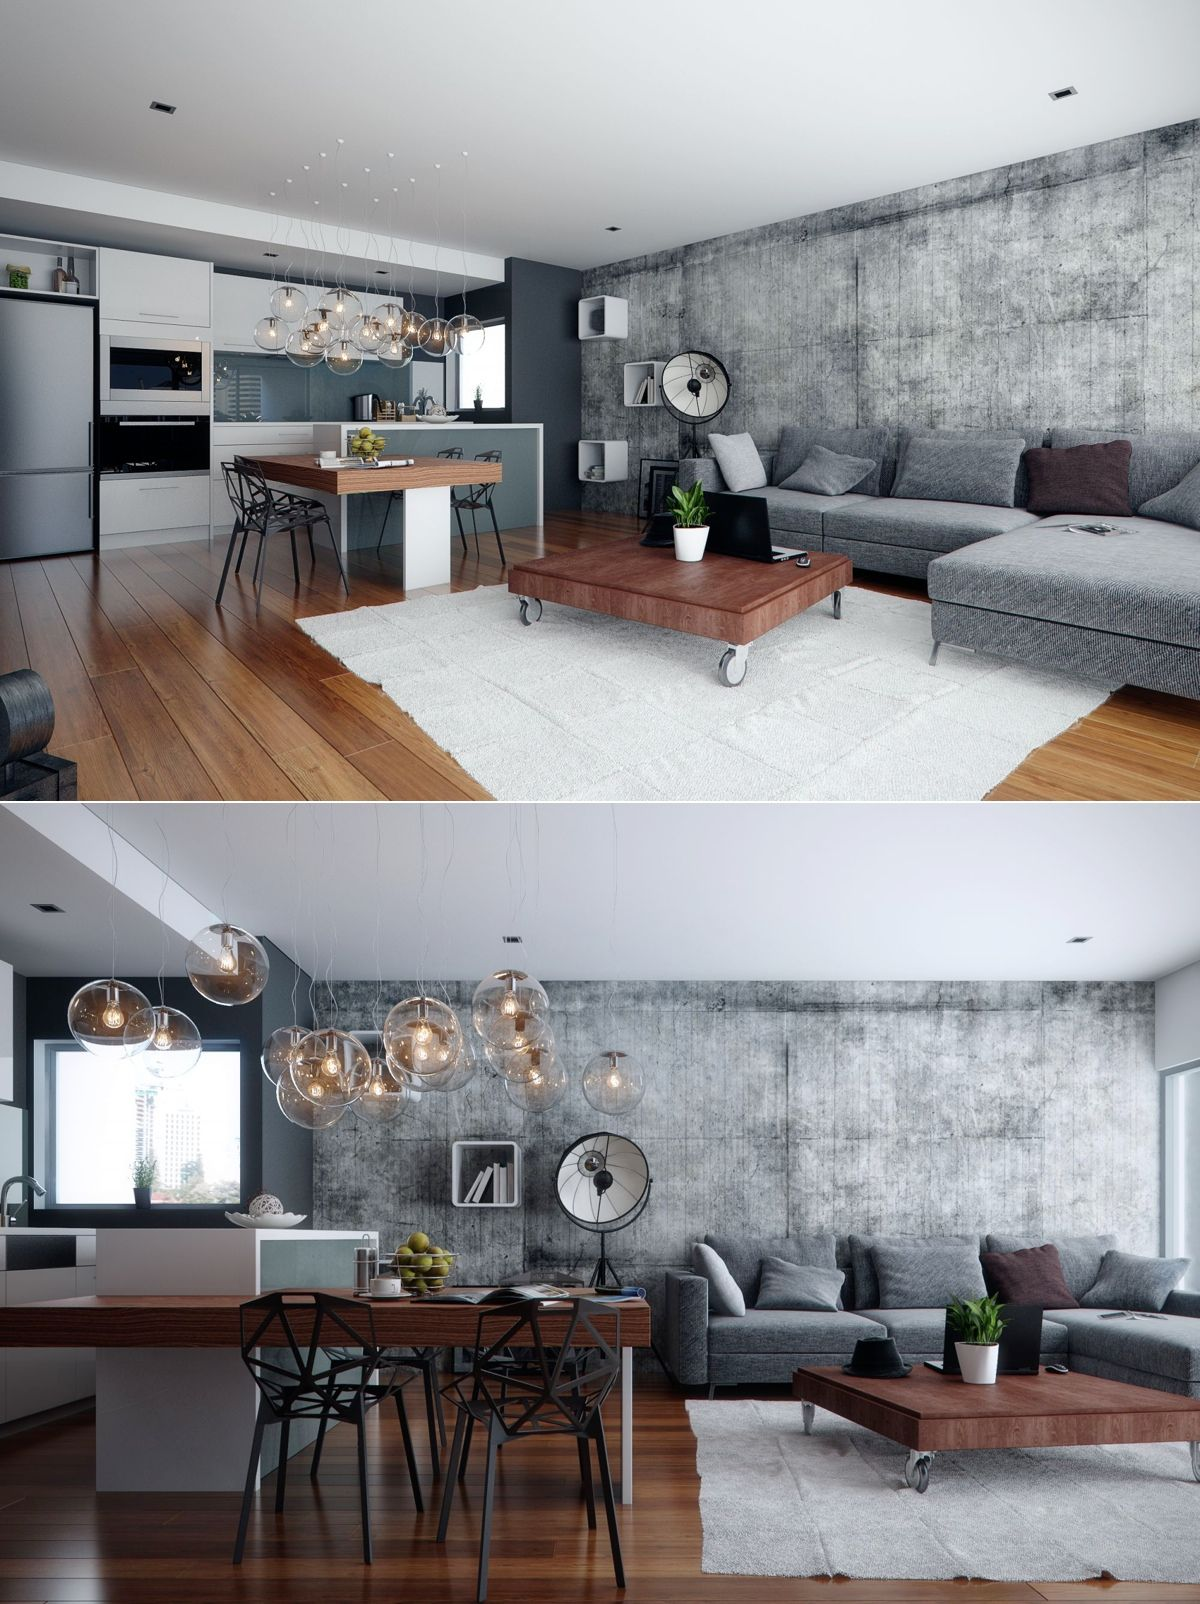 Studio apartment interiors inspiration exposed concrete for Studio apartment interior